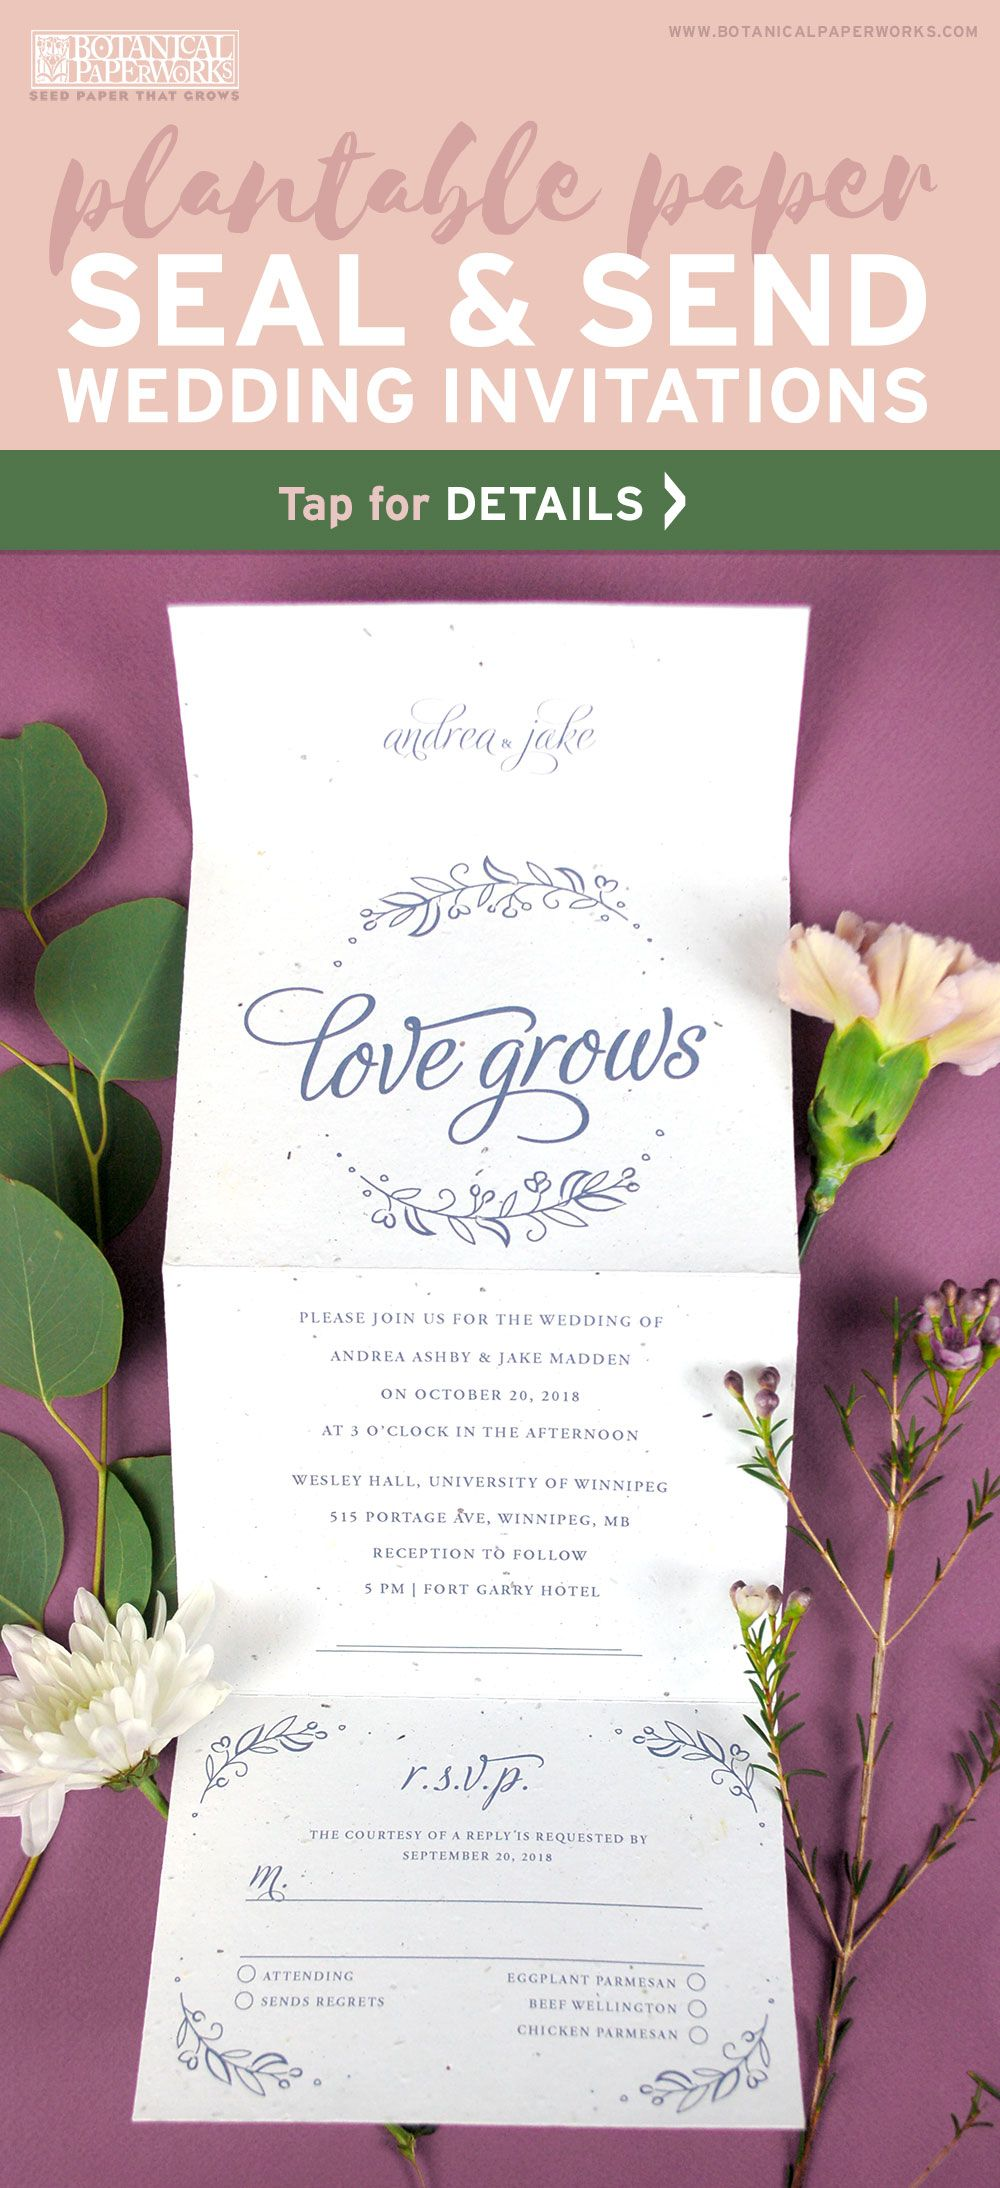 Seeds Of Love Seal And Send Wedding Invitation Green Themed Wedding Wedding Invitations Invitations